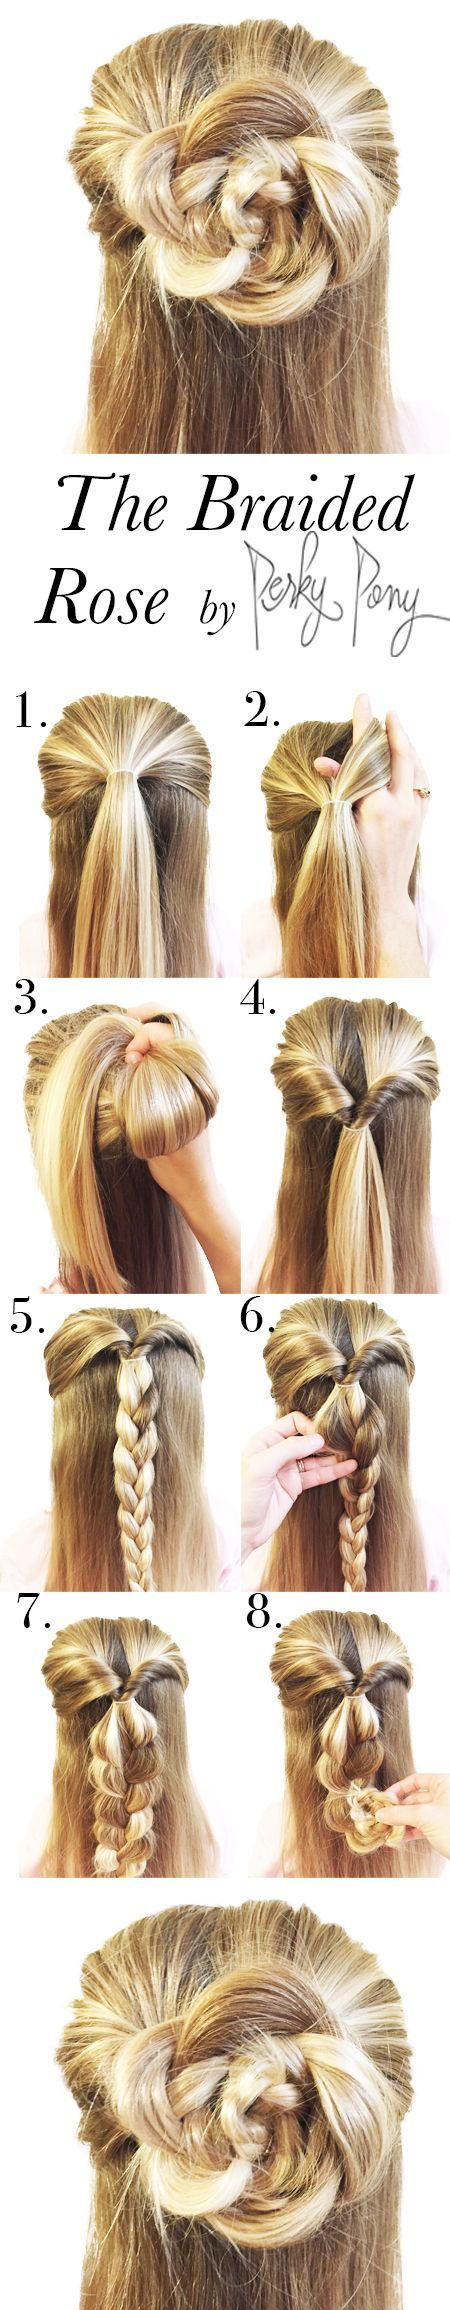 best awesome hair images on pinterest casual hairstyles cute